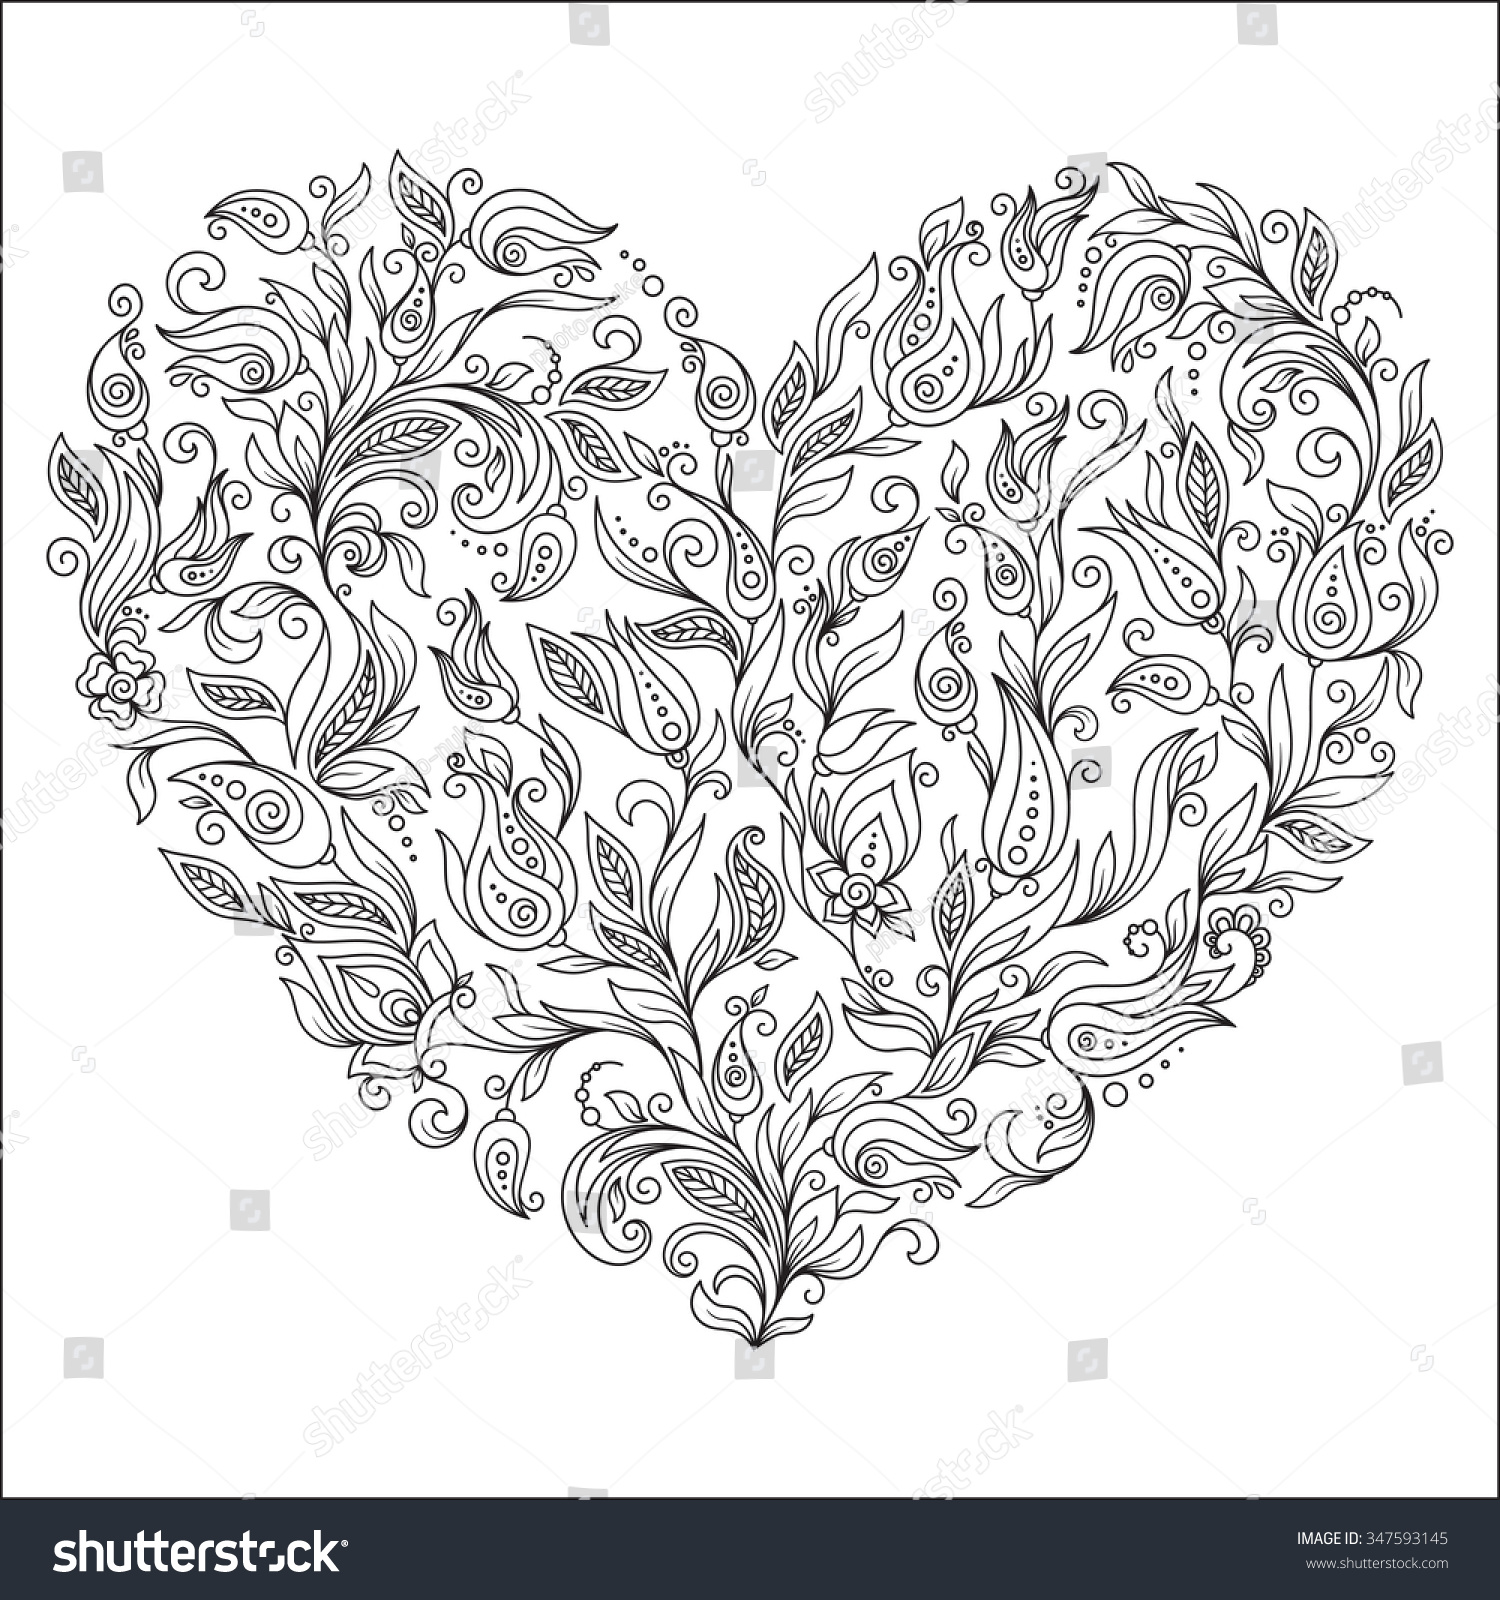 Flower art coloring pages - Coloring Page Flower Heart St Valentine S Day Greeting Card Hand Made Print Digital Art Coloring